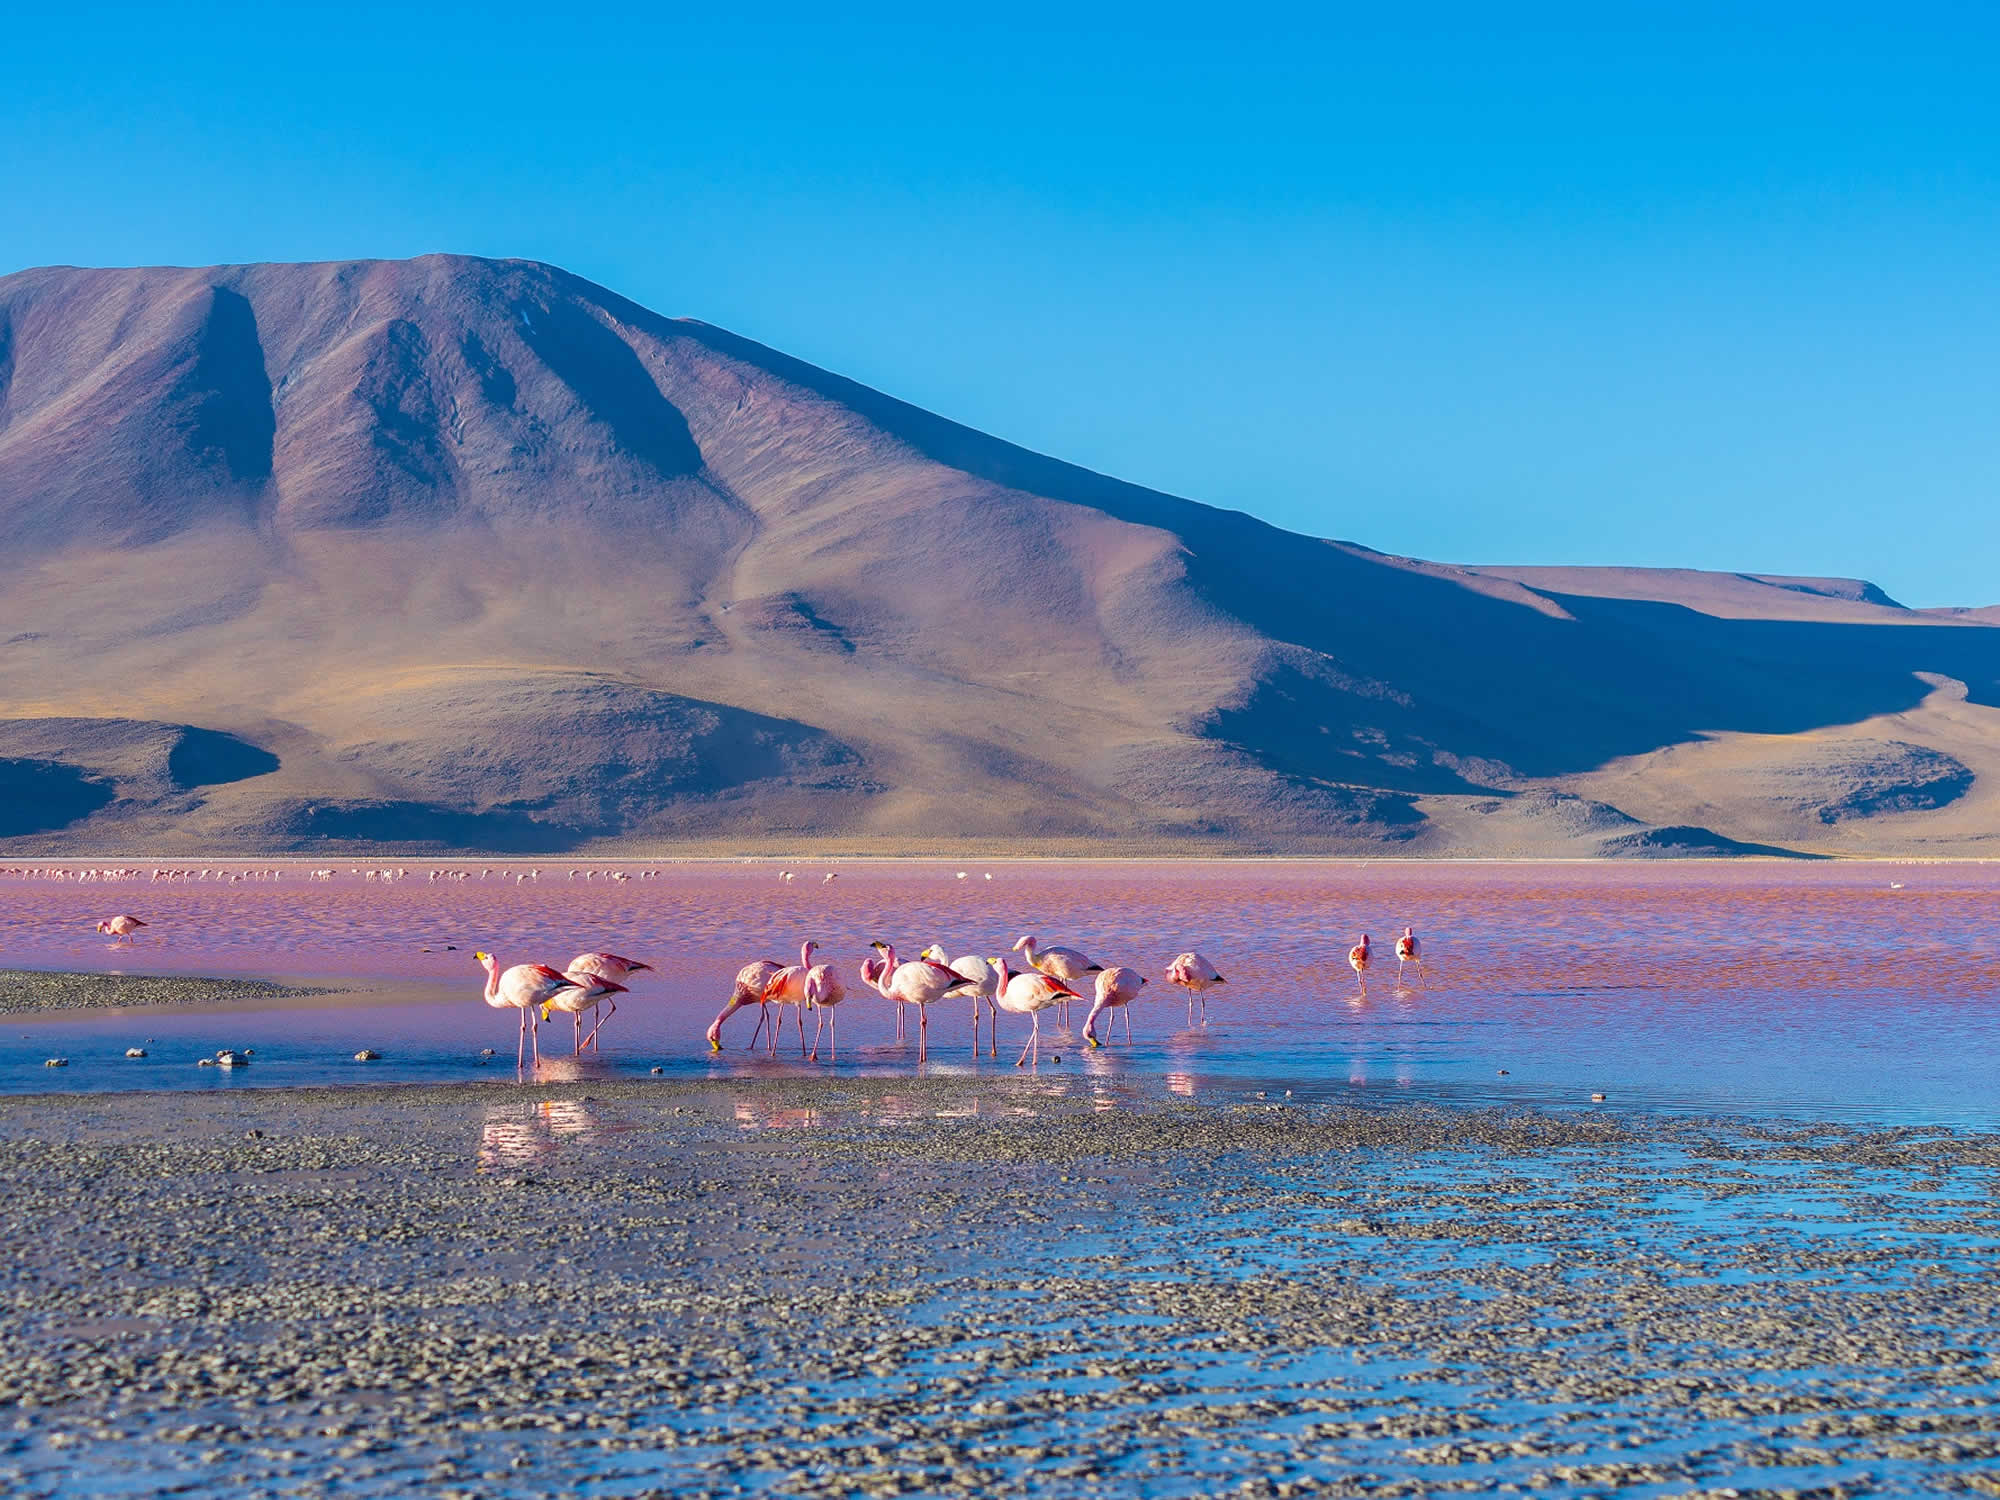 The pink colour of the flamingos is due to the large amount of algae they consume